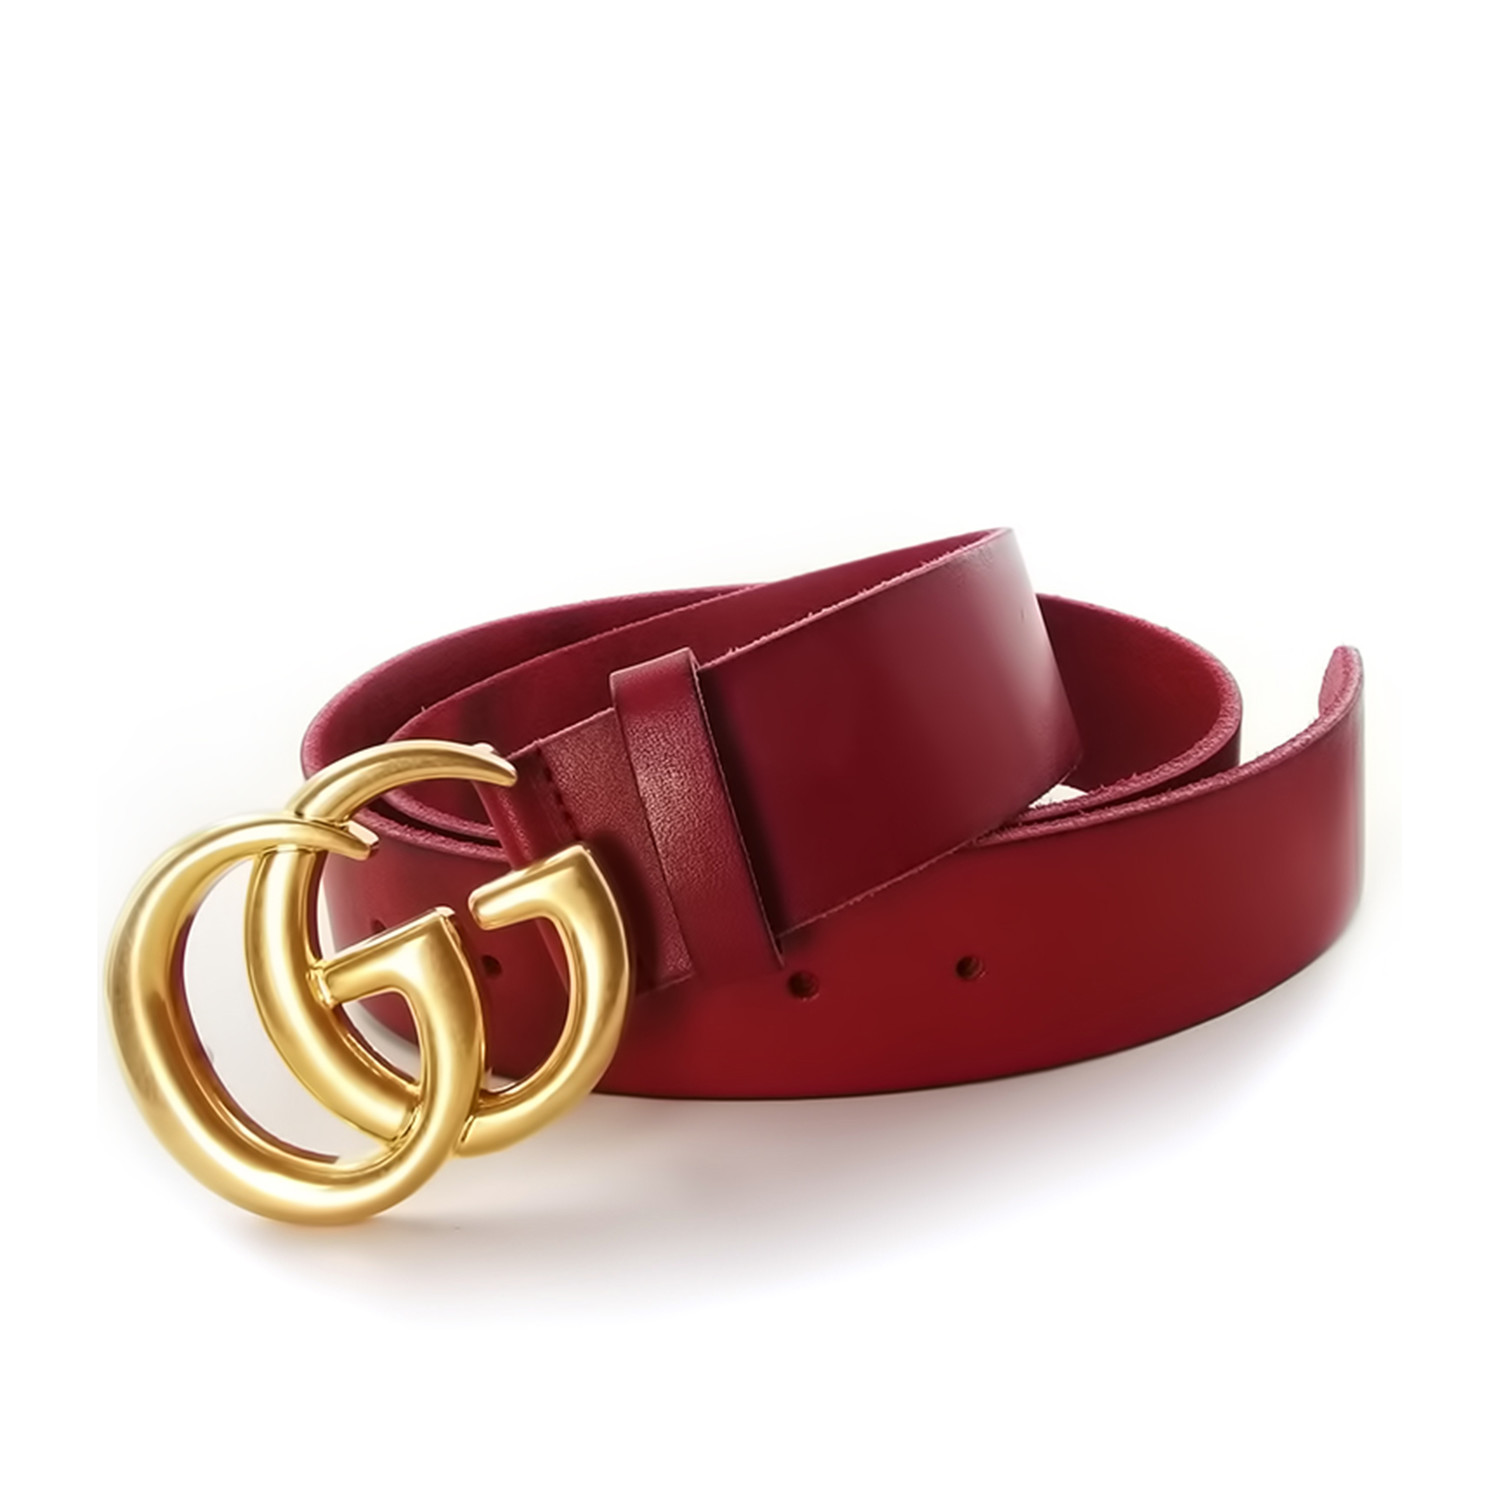 732b06a16 Gucci // Contoured GG Belt // Red + Gold (85) - Gucci Belts - Touch ...